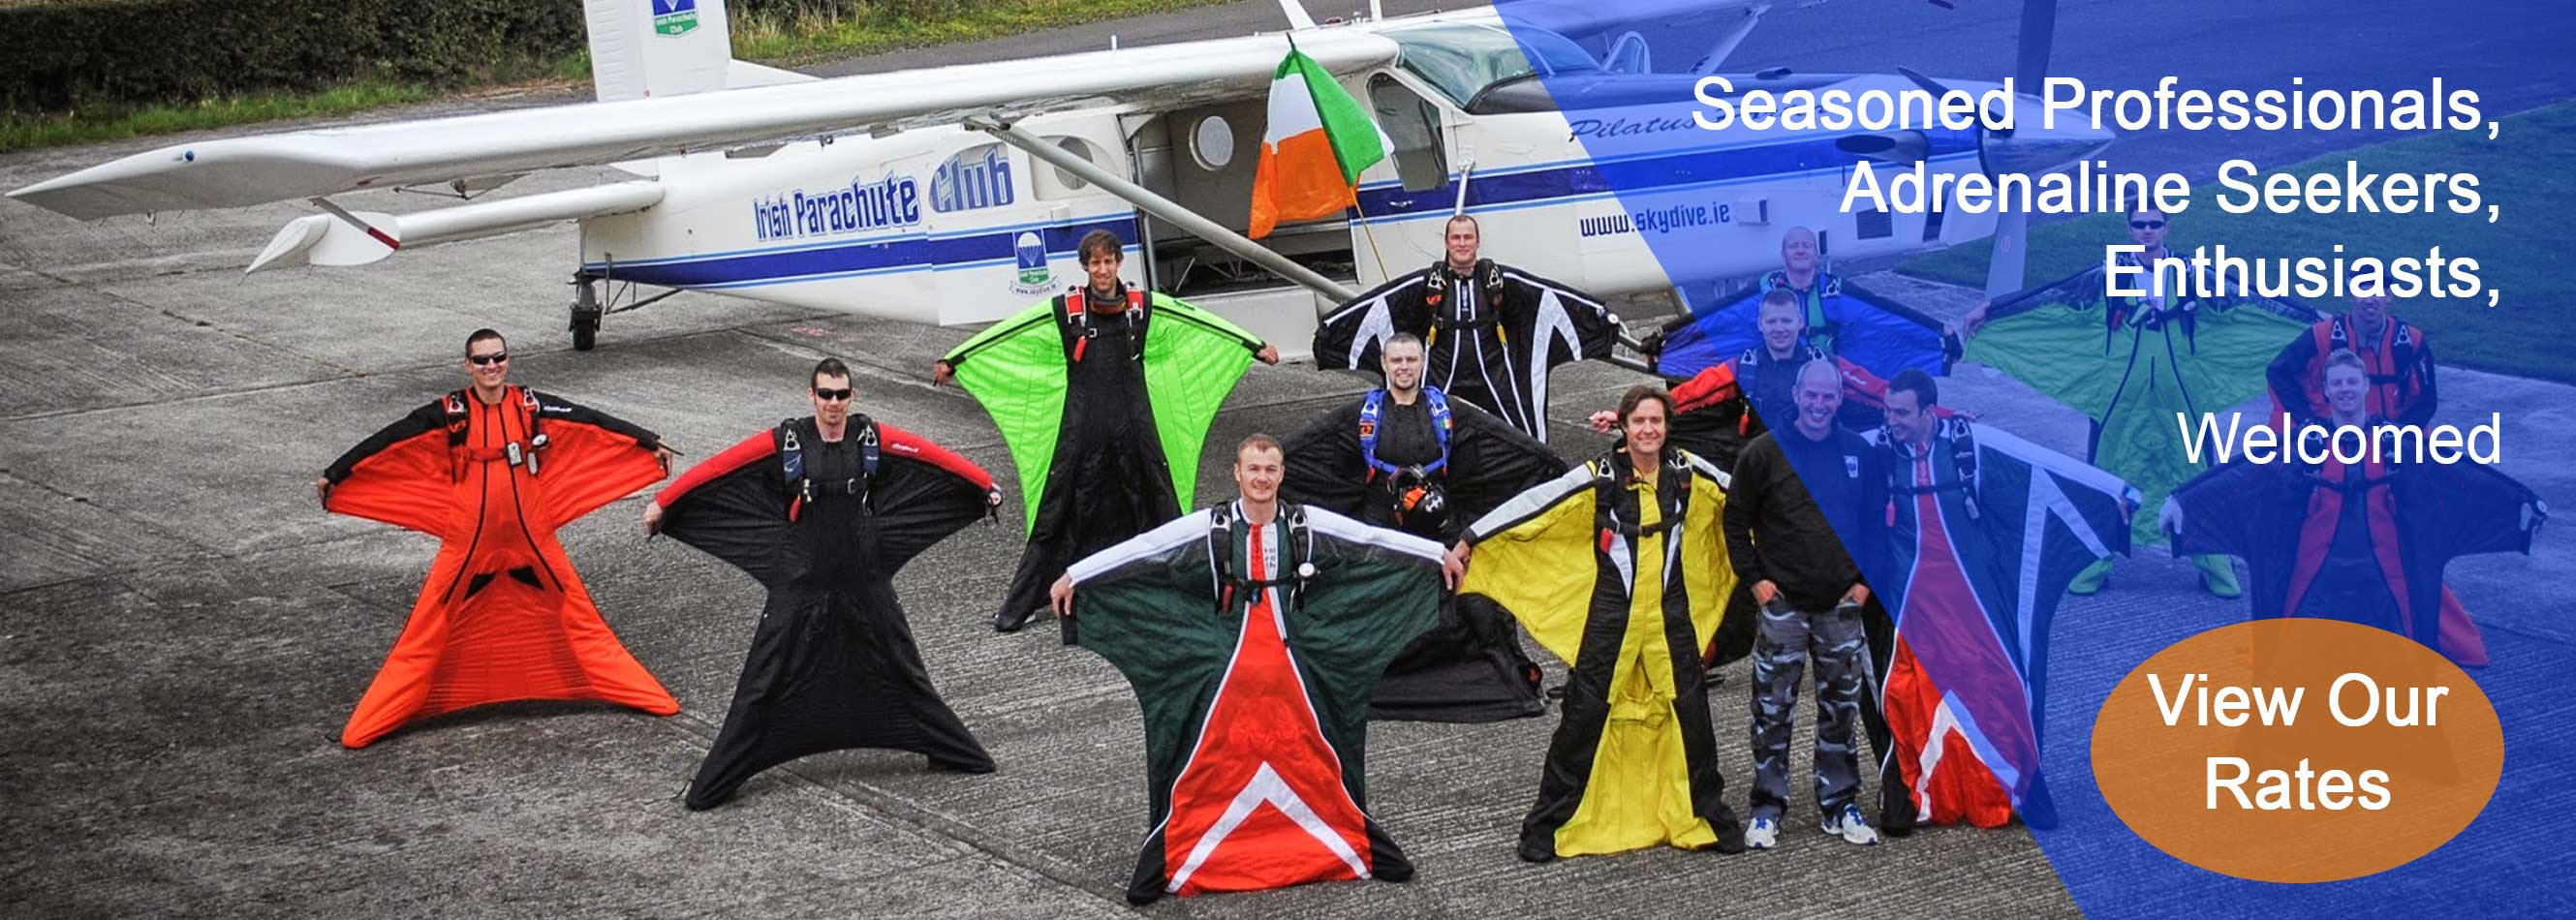 Seasoned Professionals, Adrenaline Seekers, and enthusiasts welcomed at Skydive.ie and the Irish Parachute Club